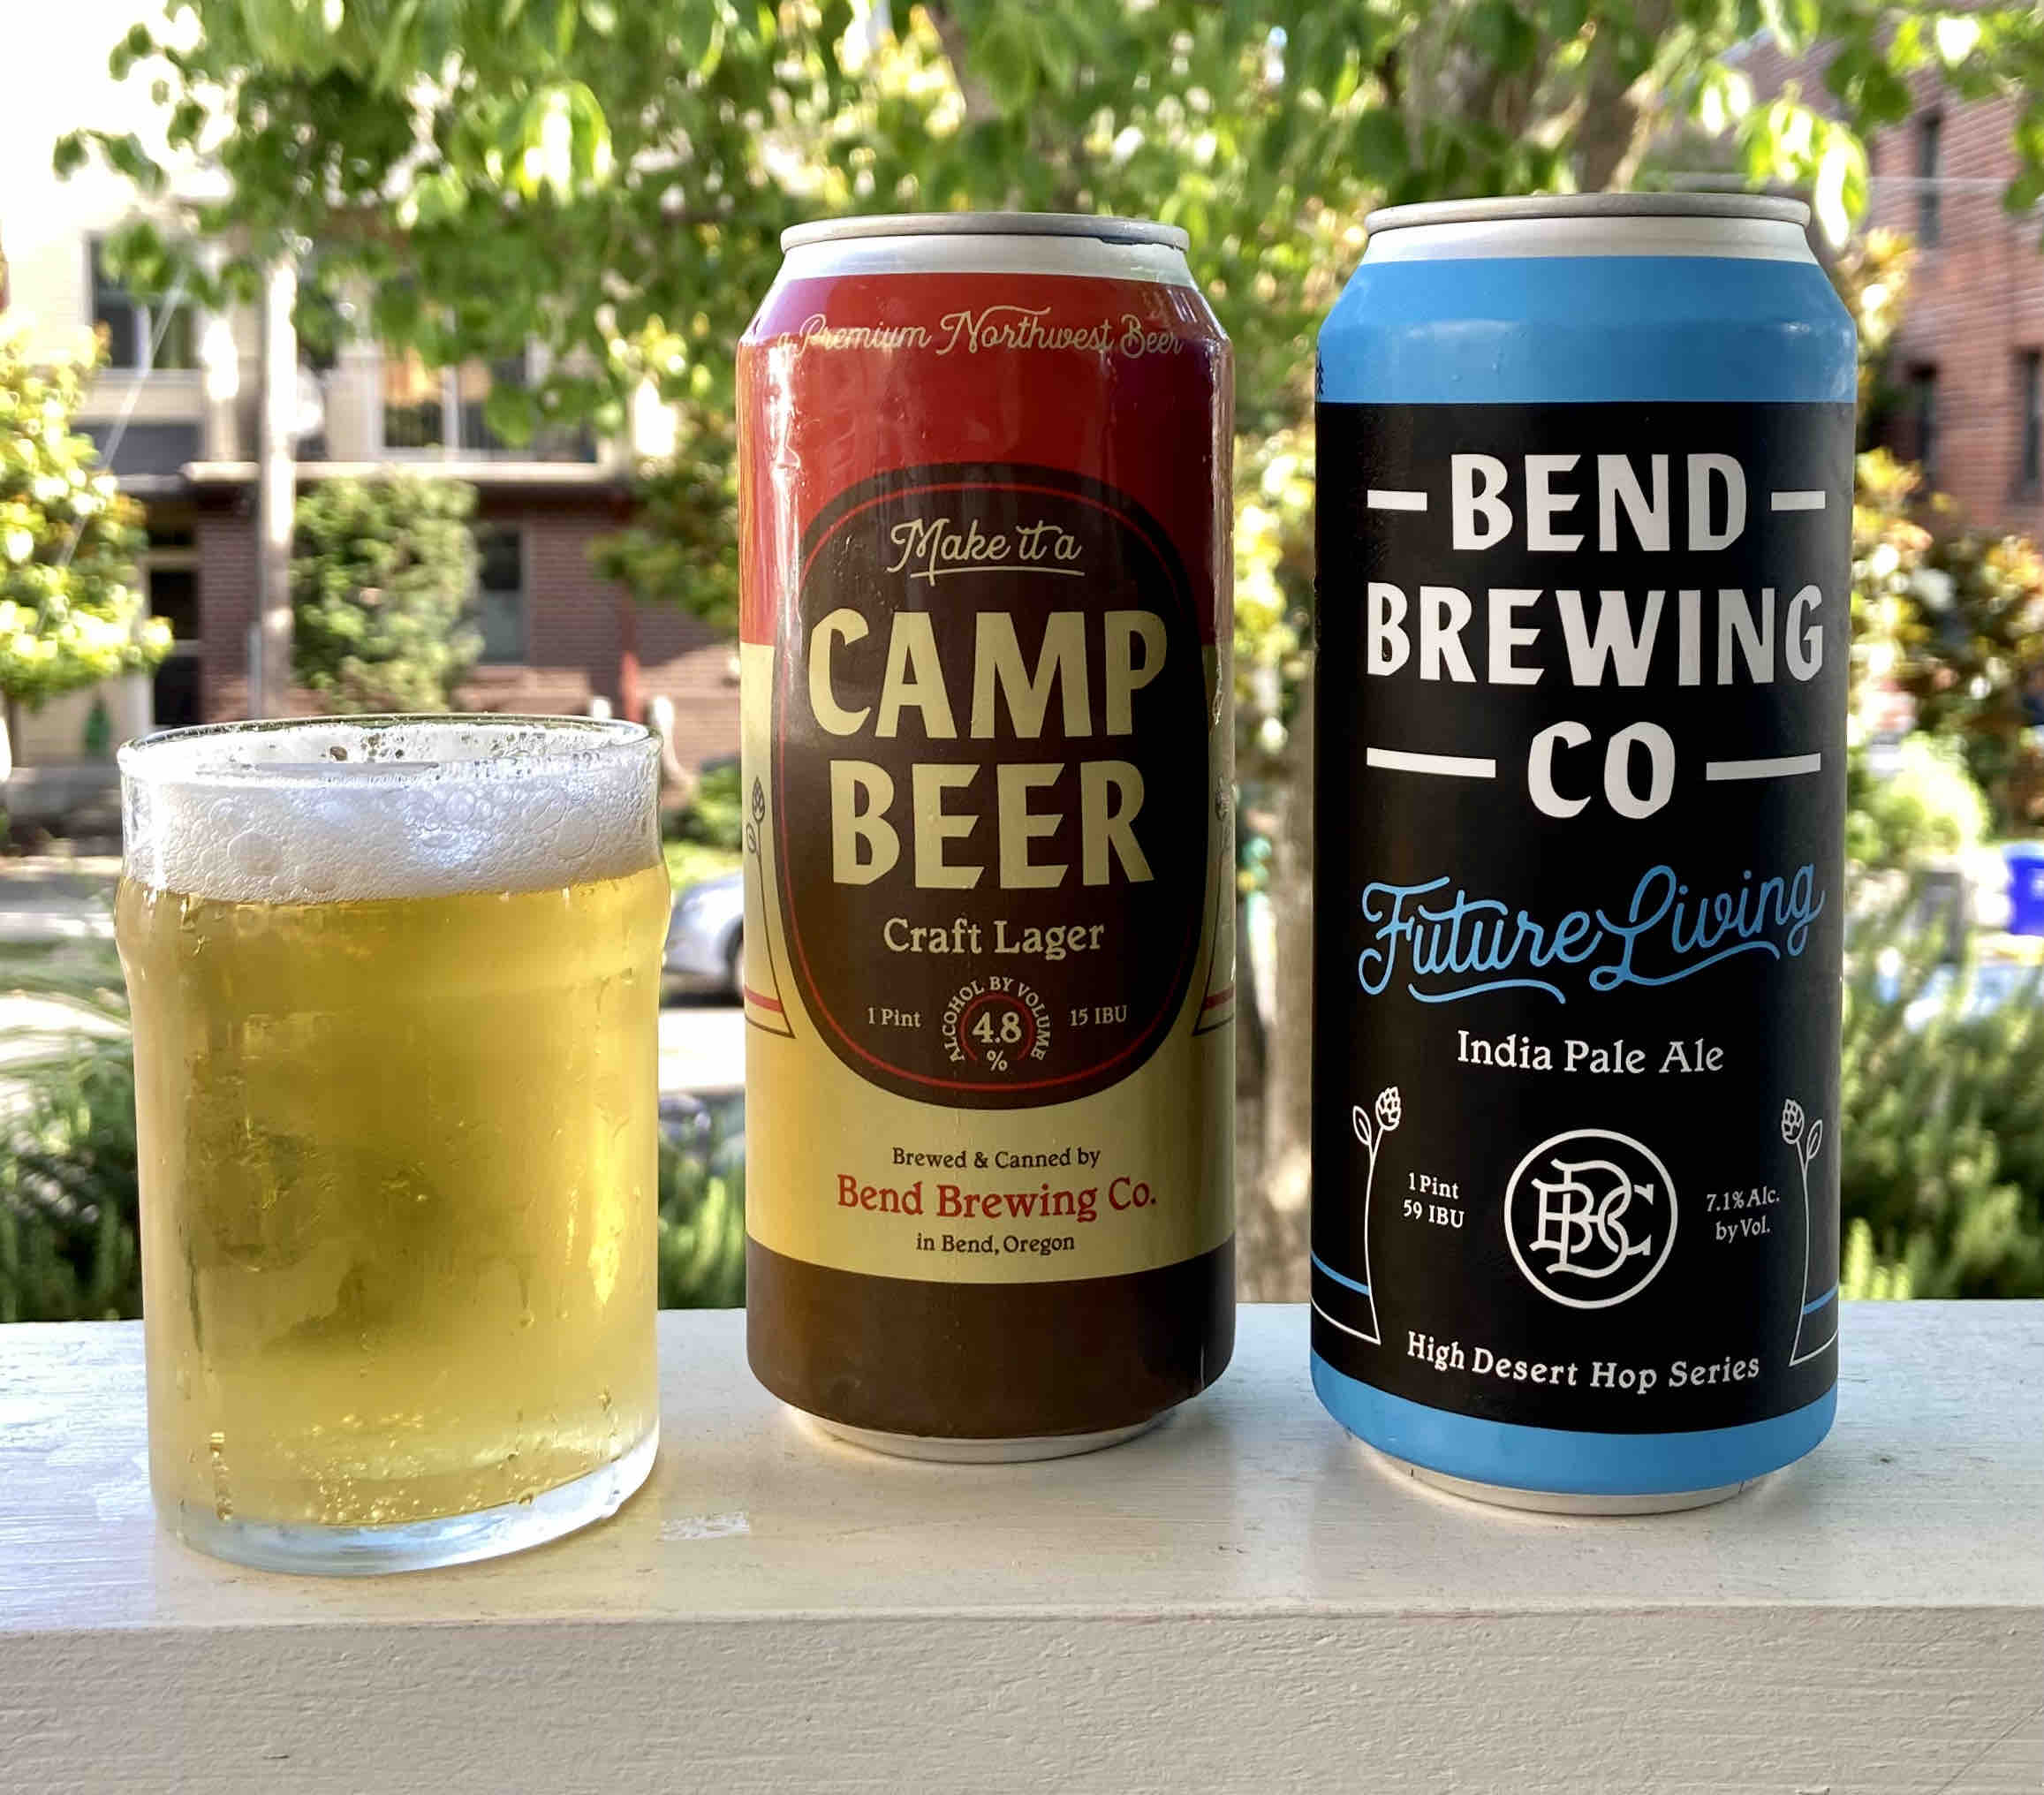 Camp Beer Craft Lager and Future Living IPA from Bend Brewing Co. joins its lineup of cans in time for summer.